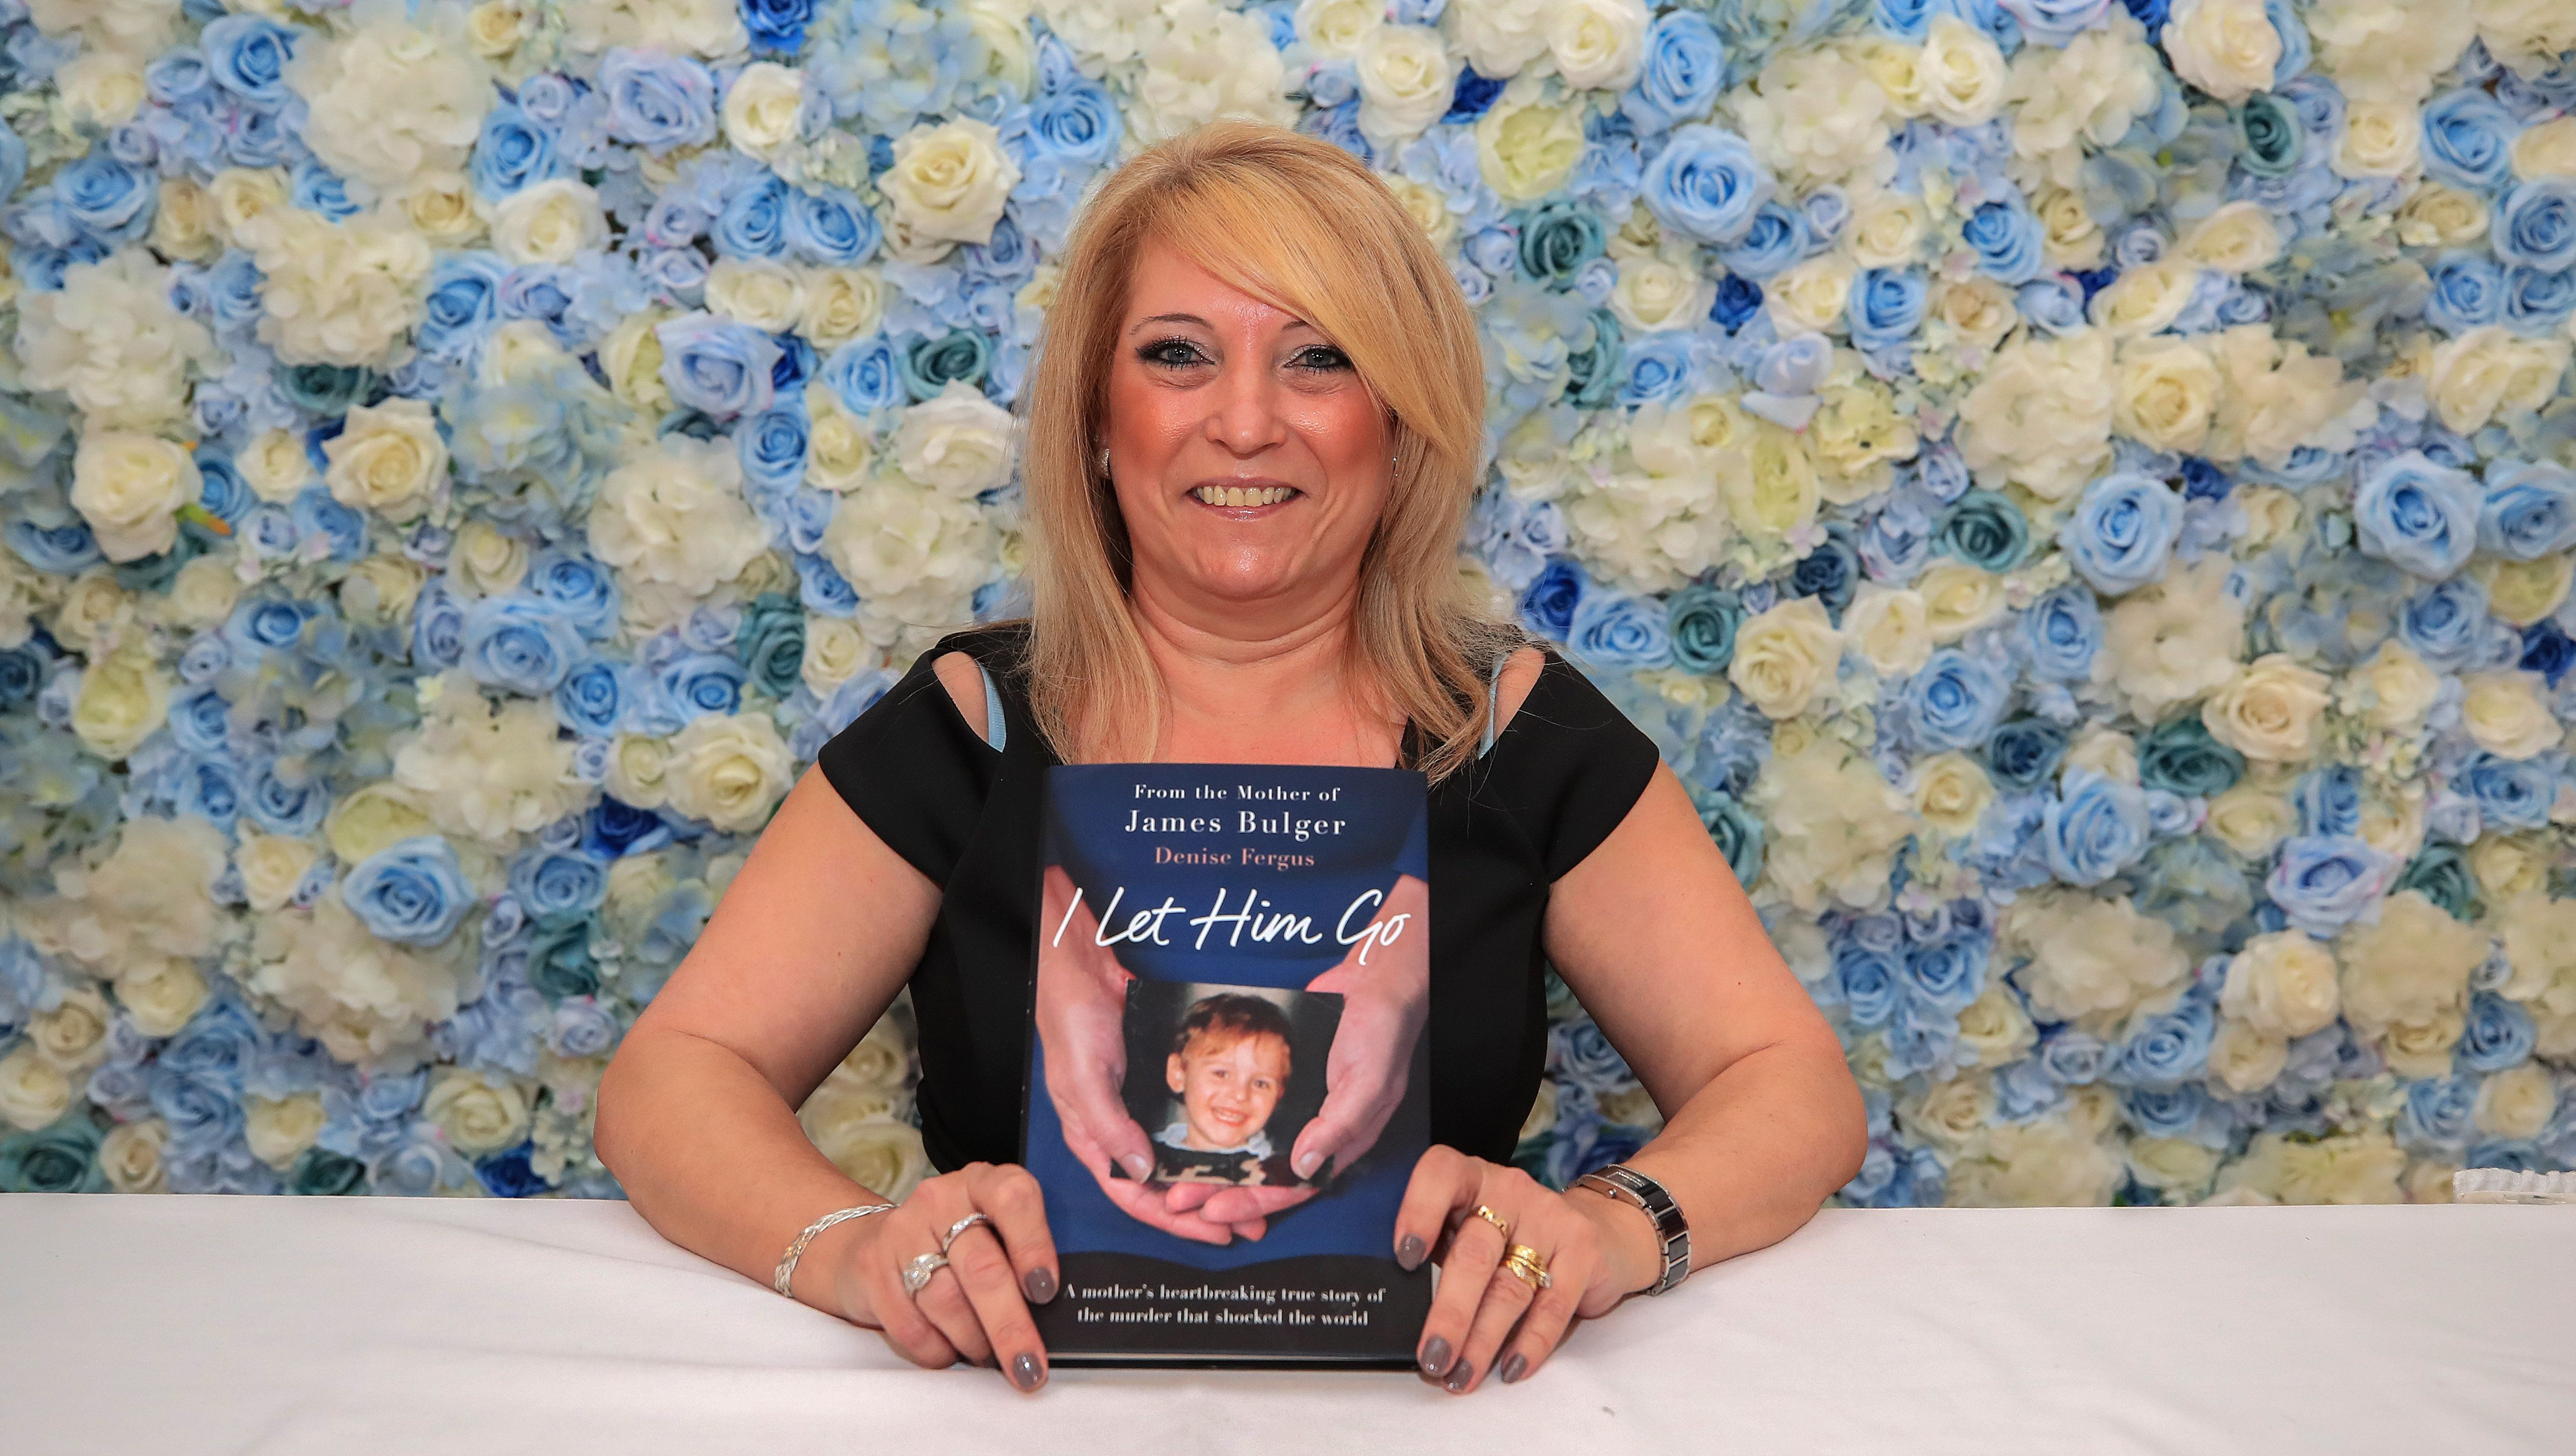 <strong>Fergus at the launch of her book, I Let Him Go, in a Merseyside hotel</strong>